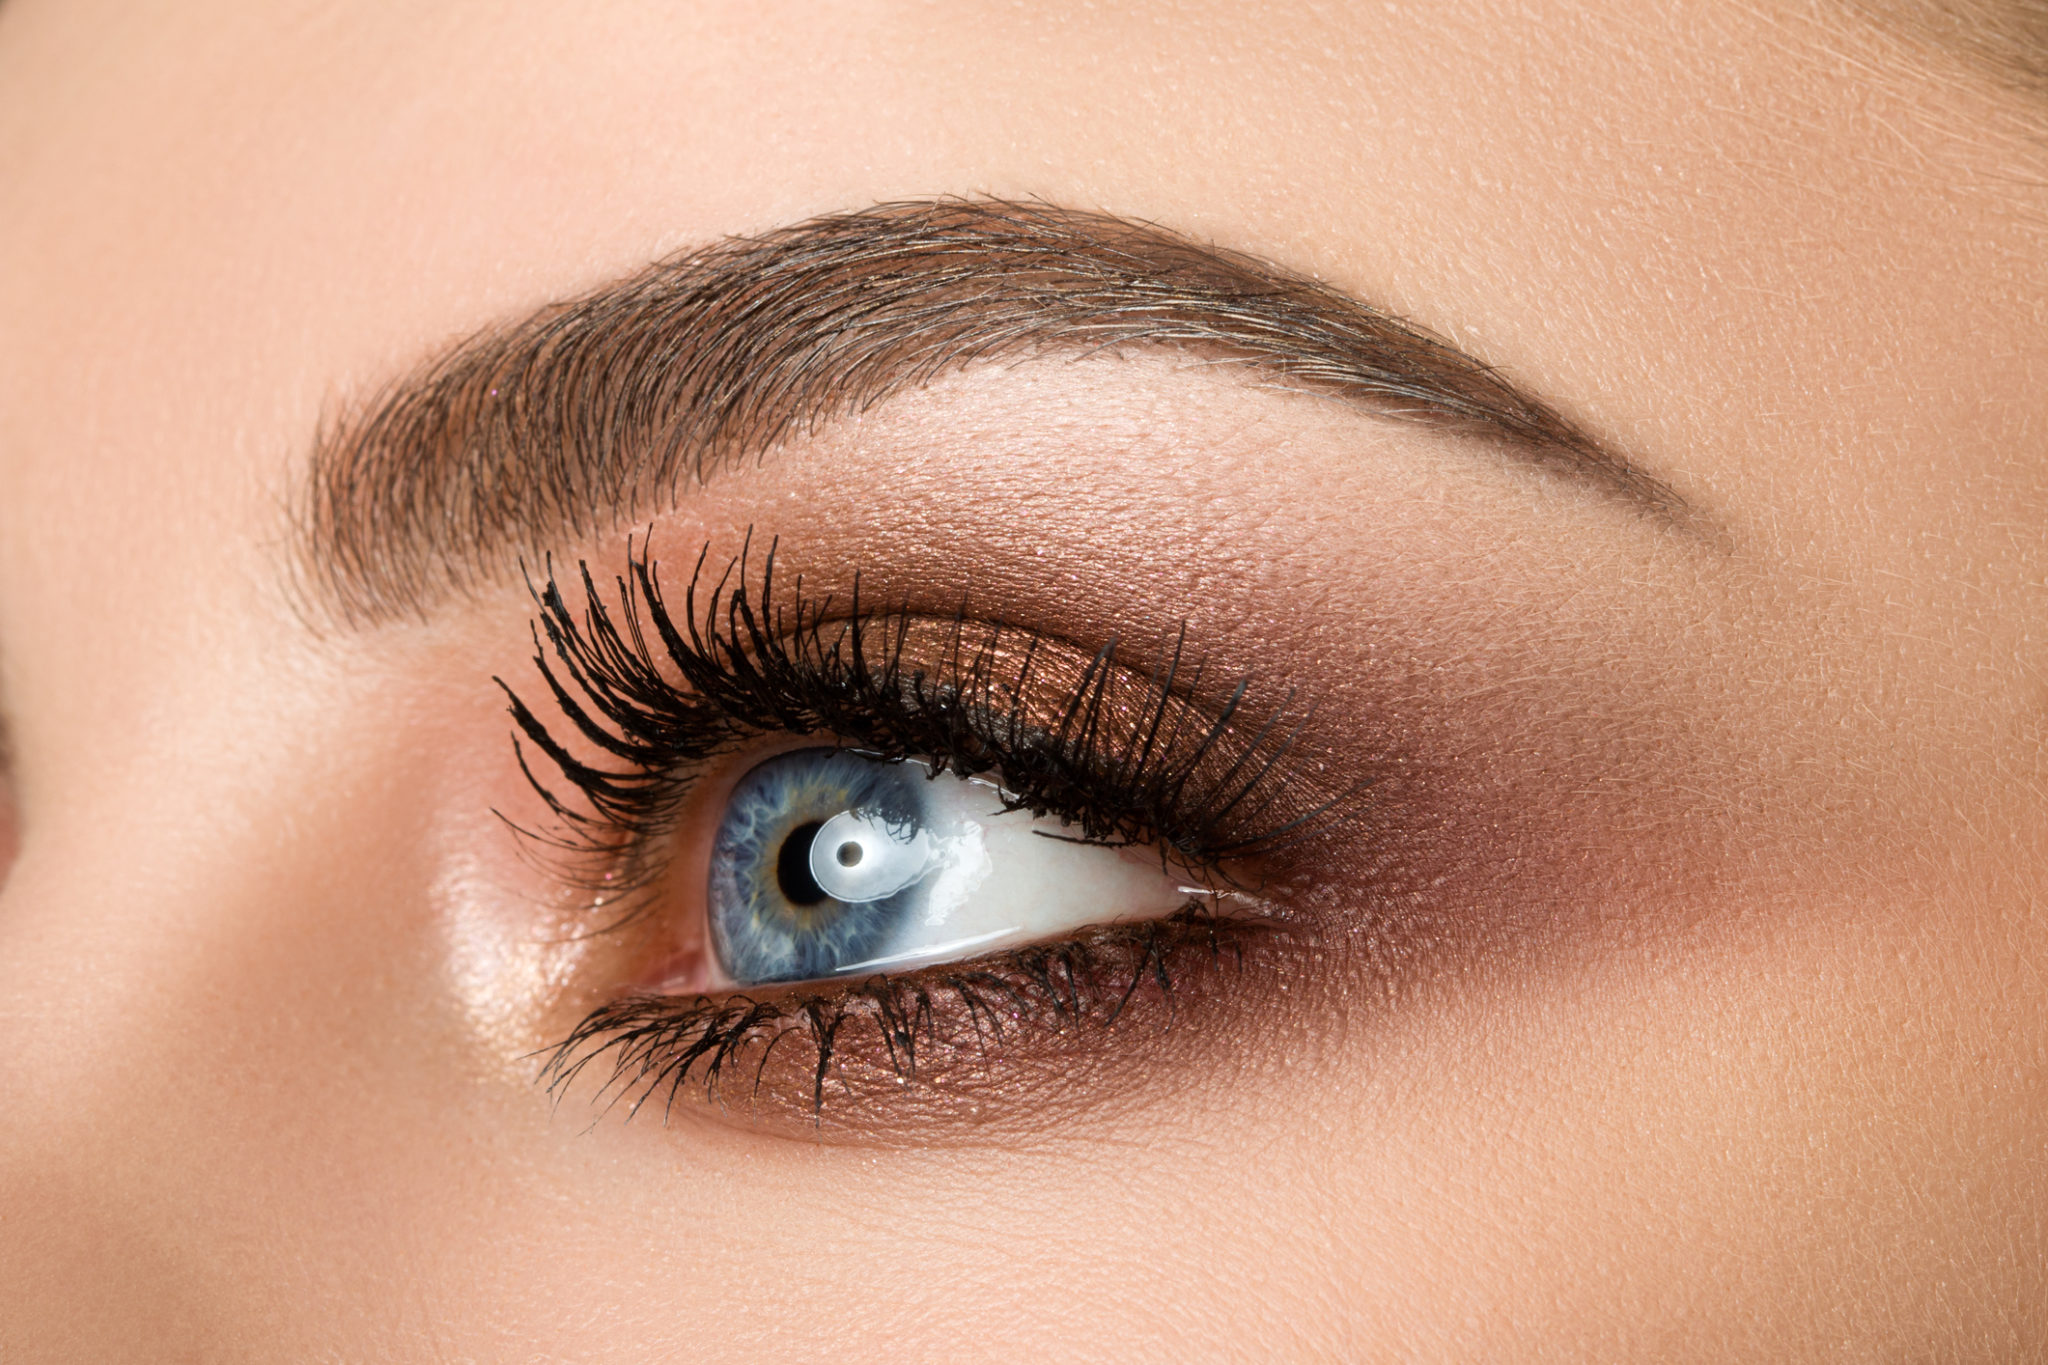 Microblading, Microshading, and Microfeathering: What's the